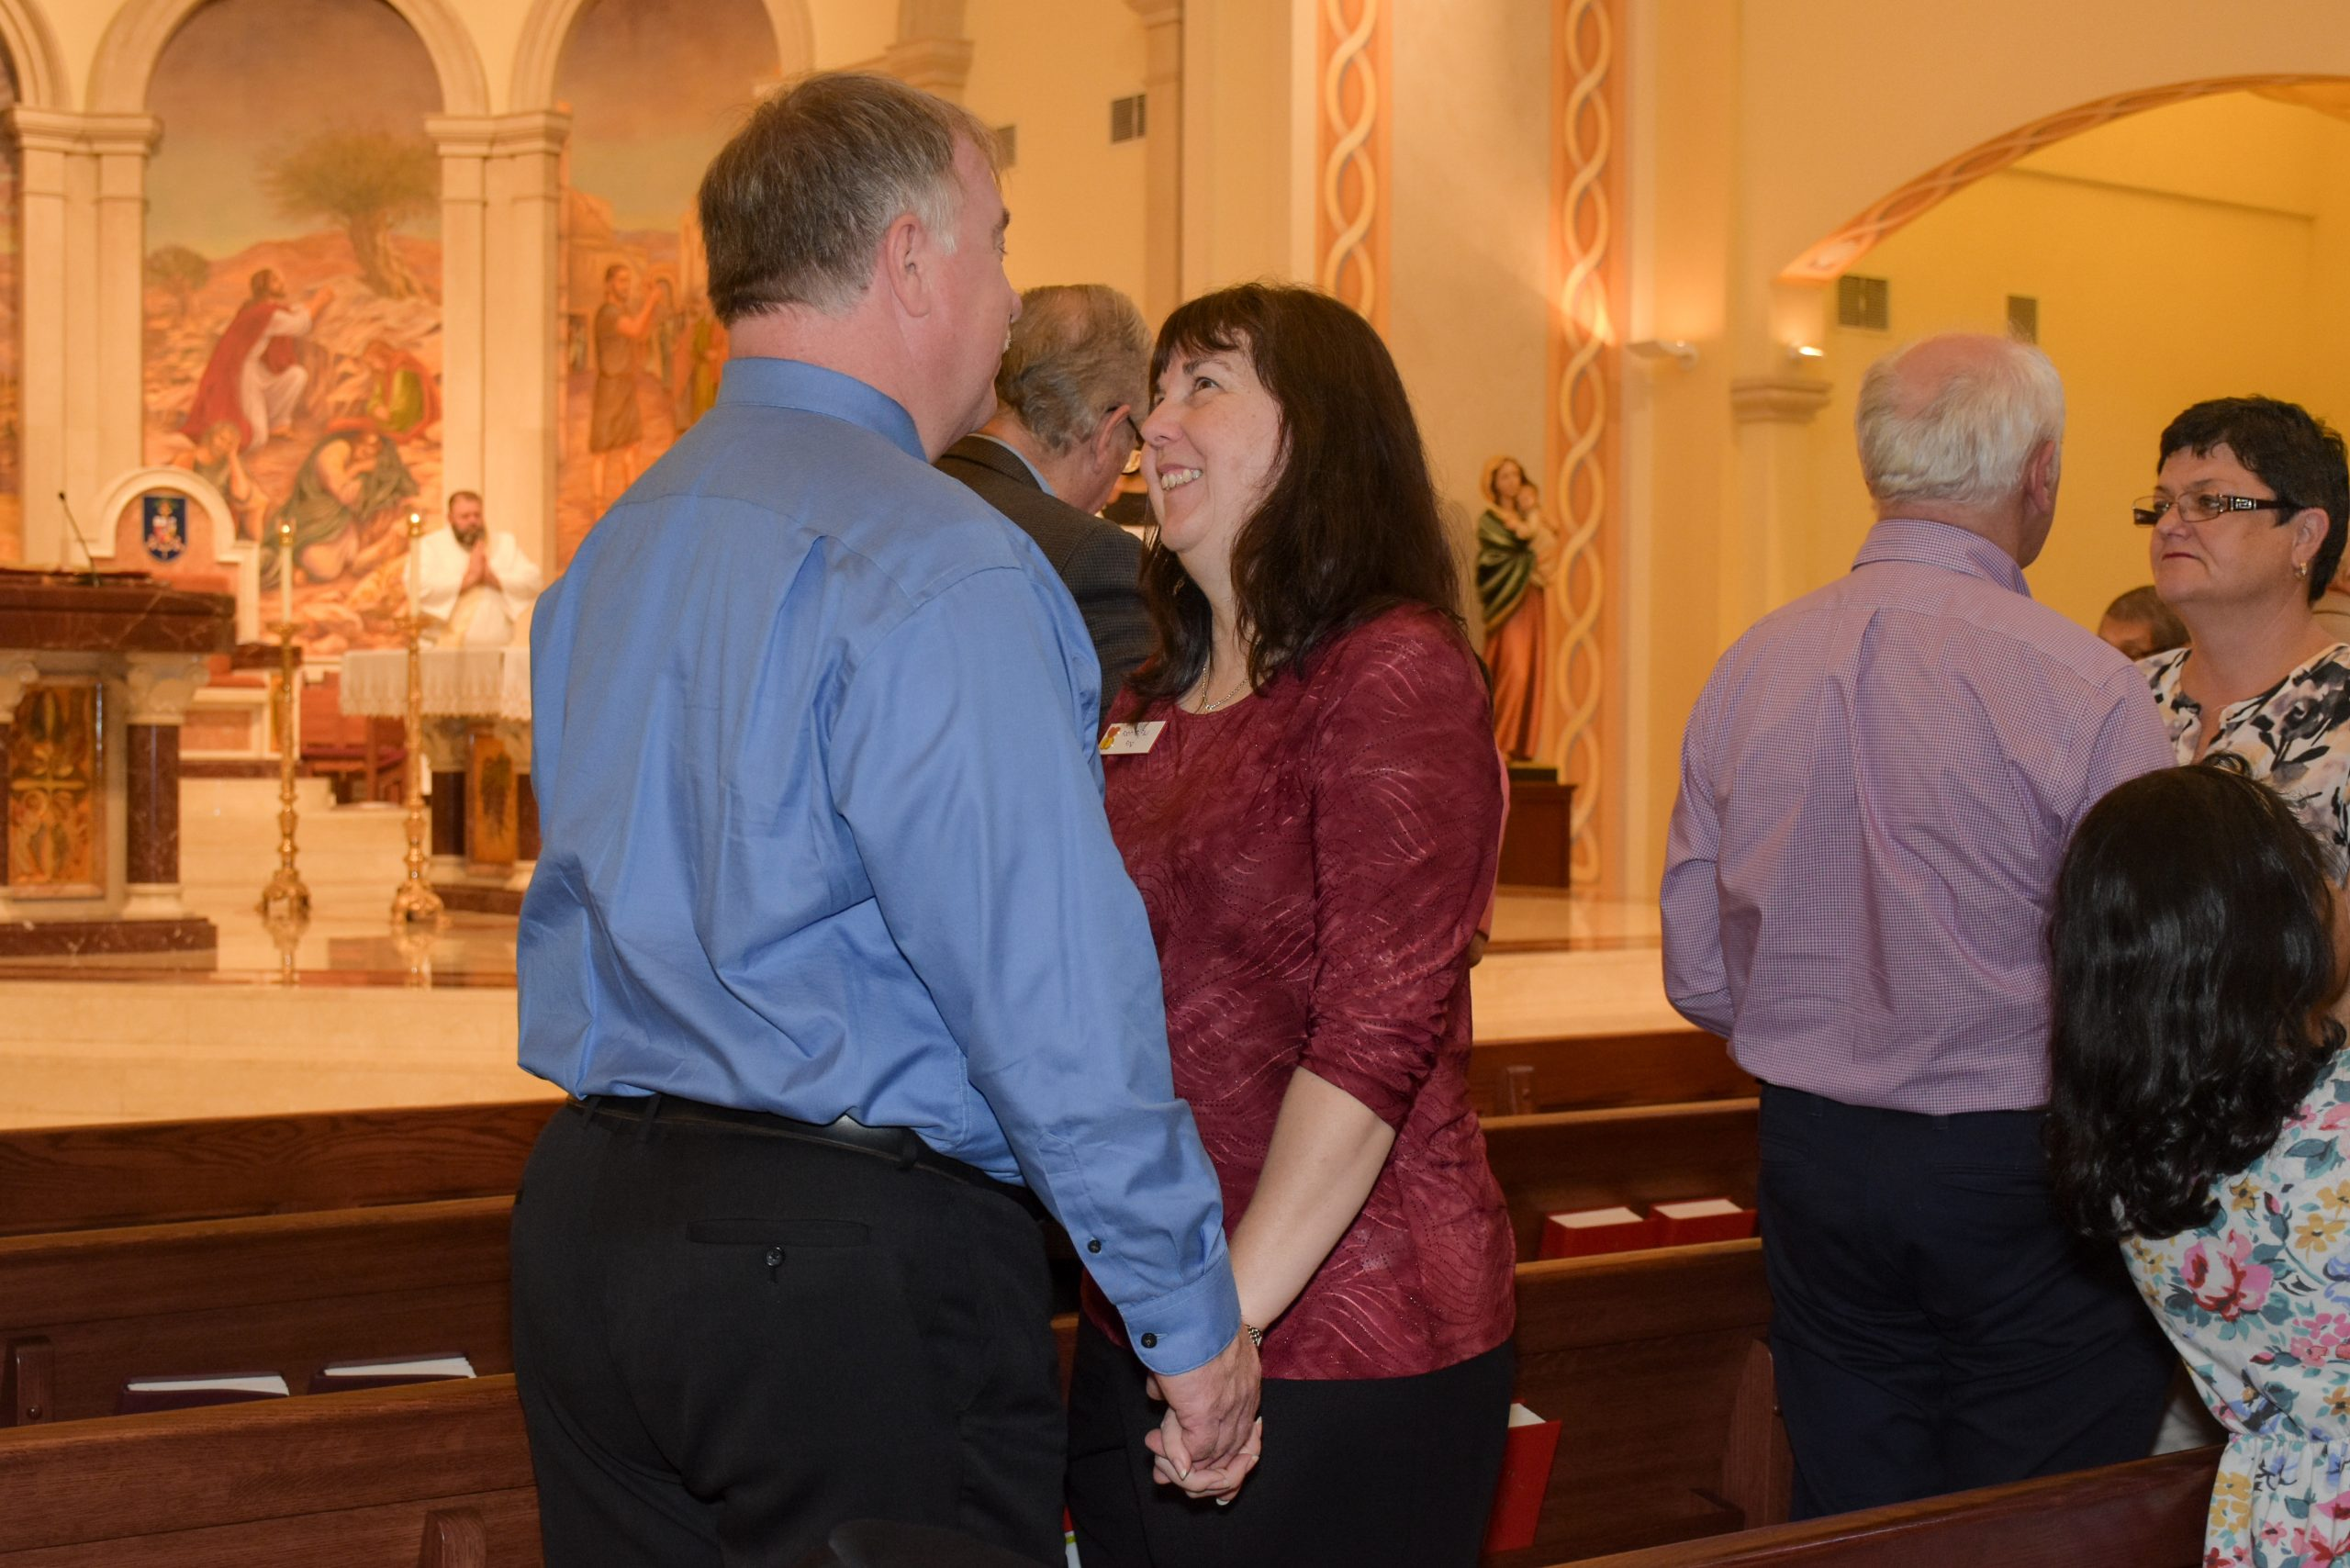 Couples renew marital covenant